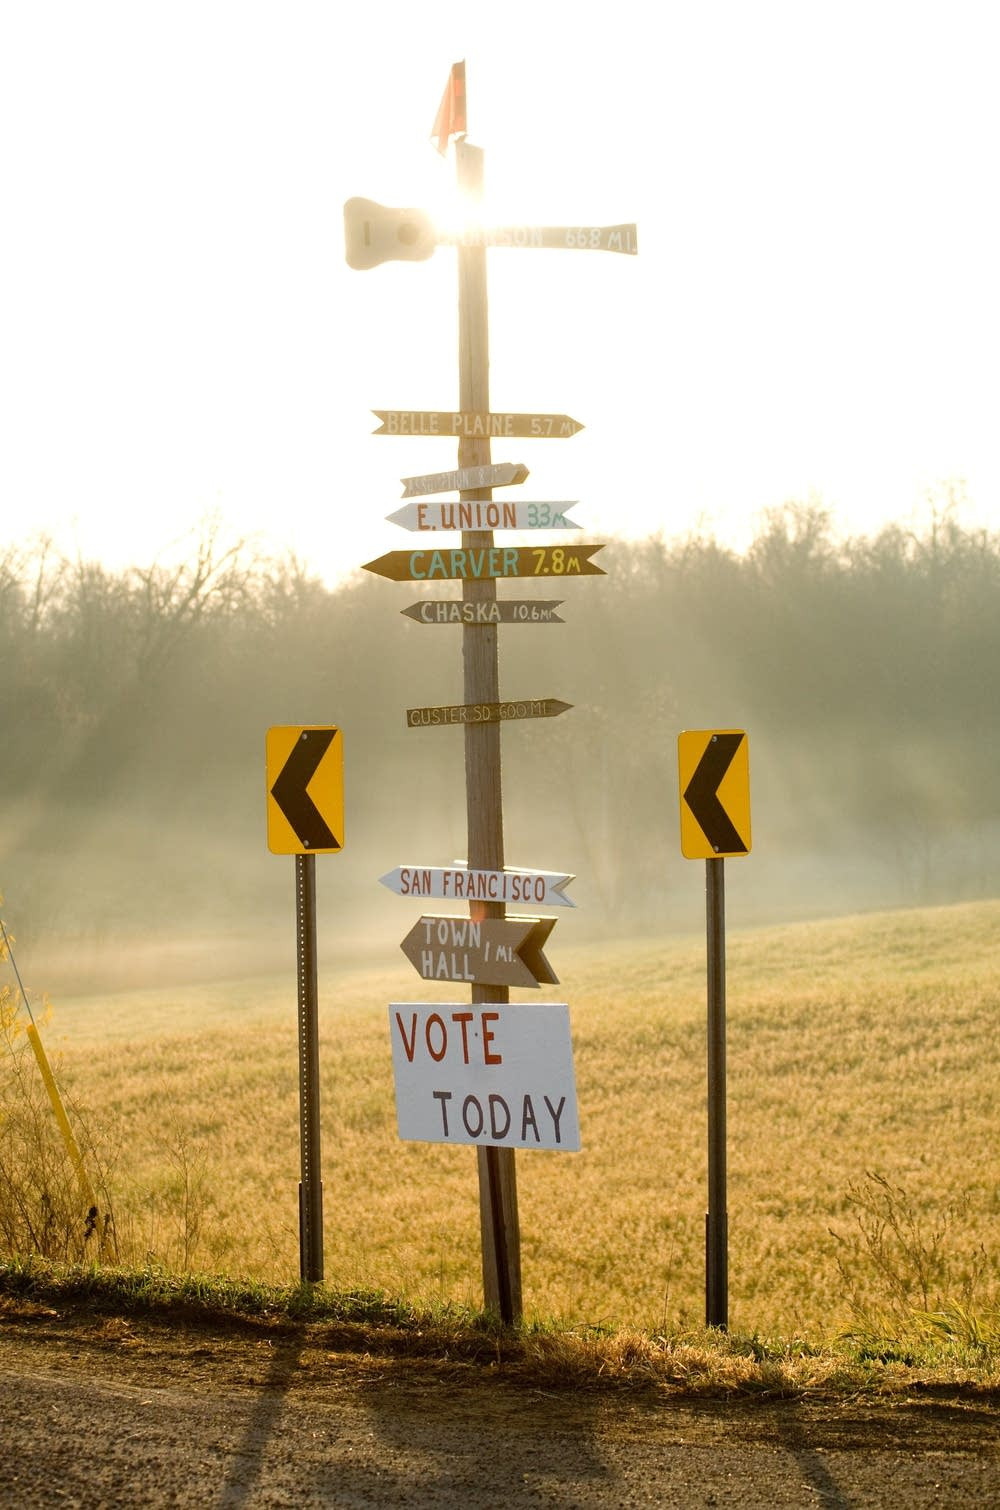 Rural polling place sign